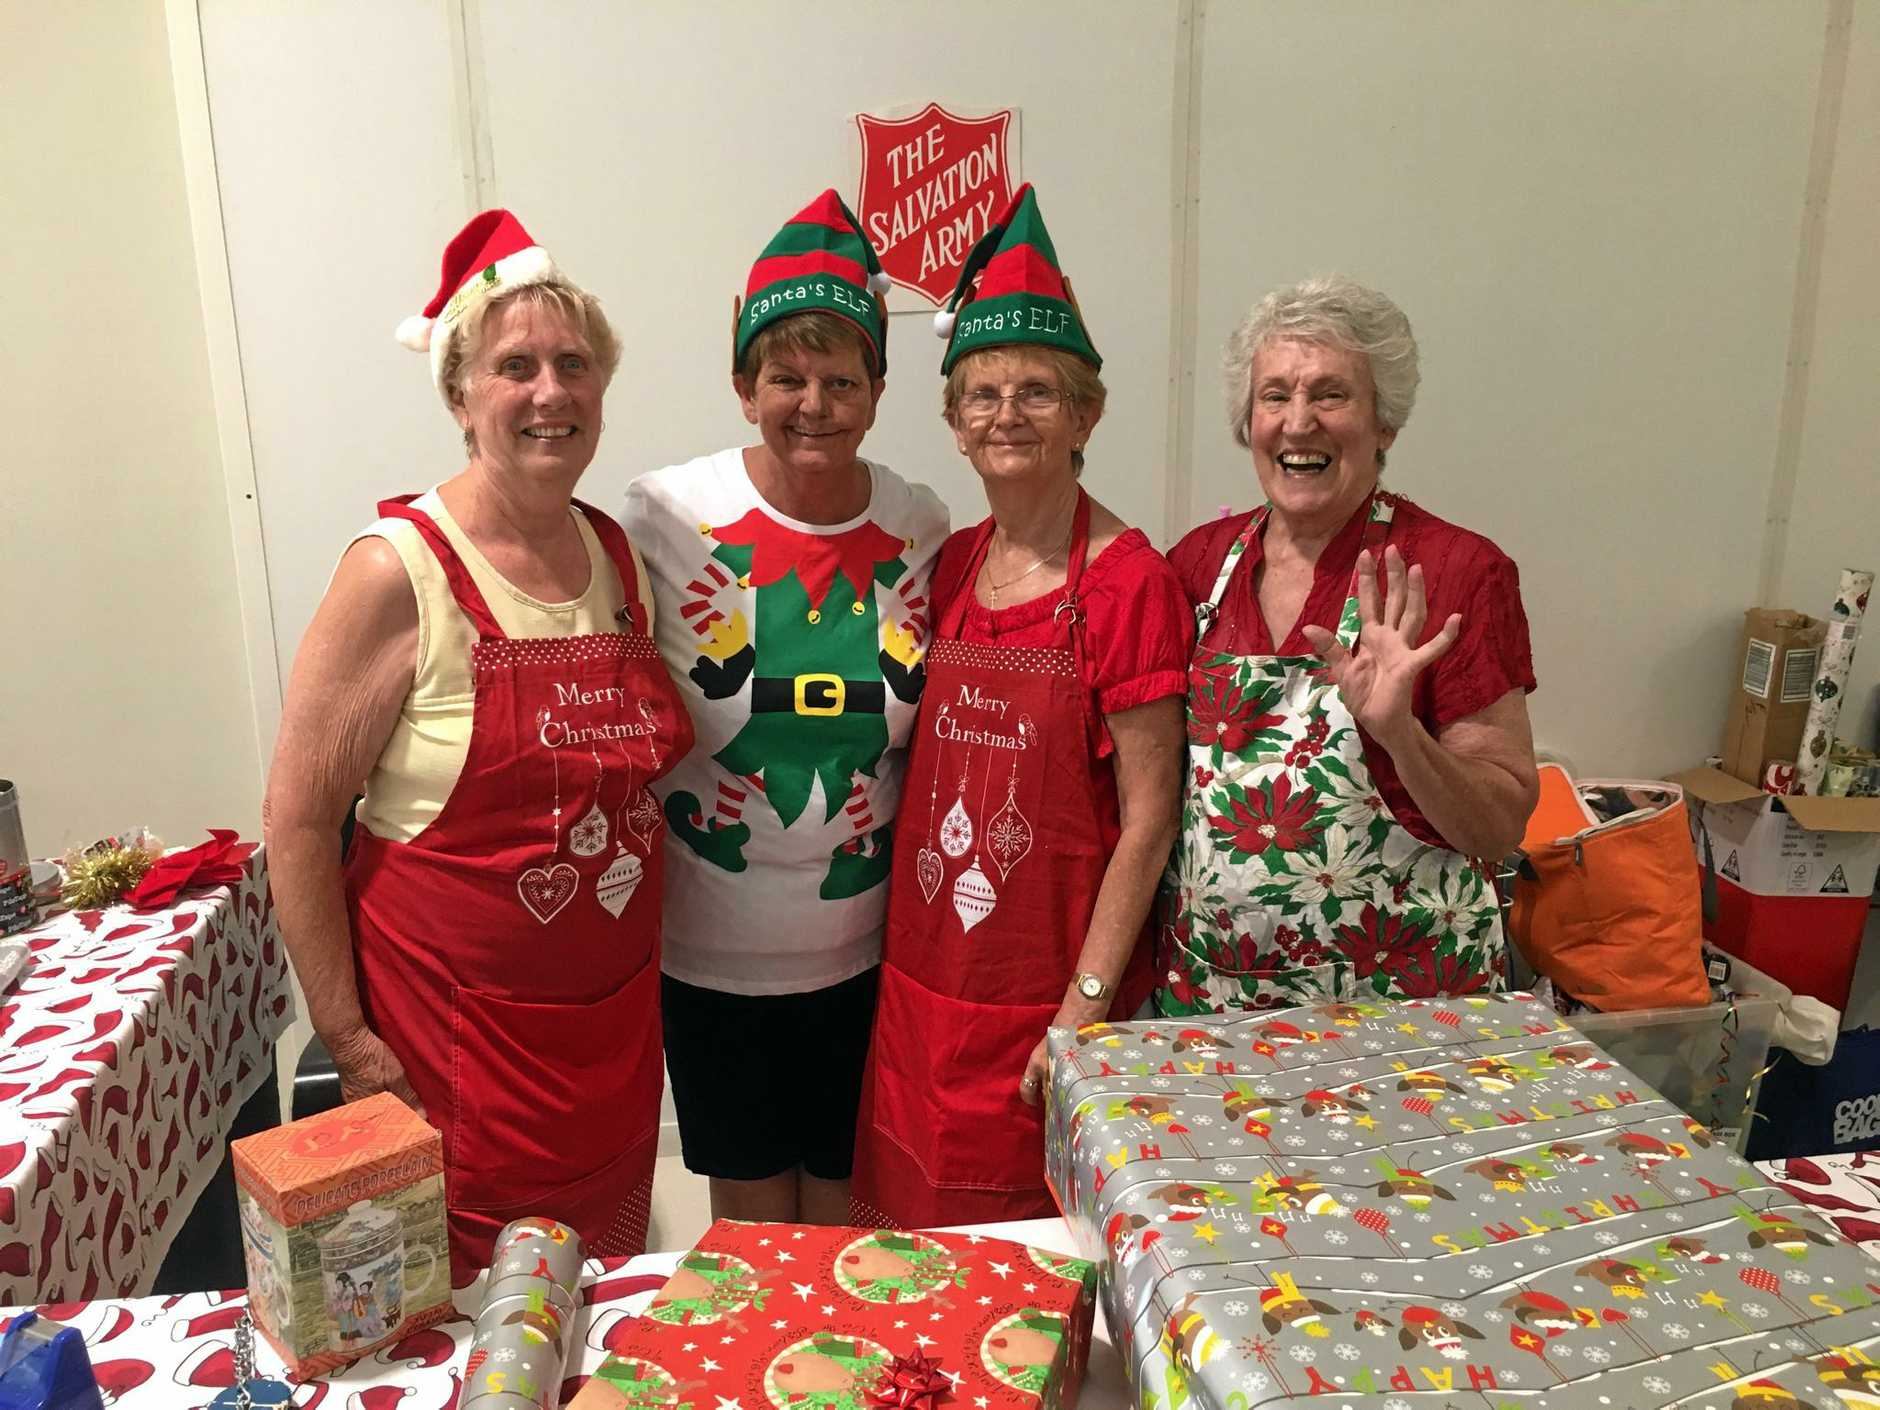 HELPING HAND: Valerie Hendrie, Daphne Rose, Yvonne Hall and June Richardson have been volunteering their time to help wrap Christmas presents for The Salvation Army.